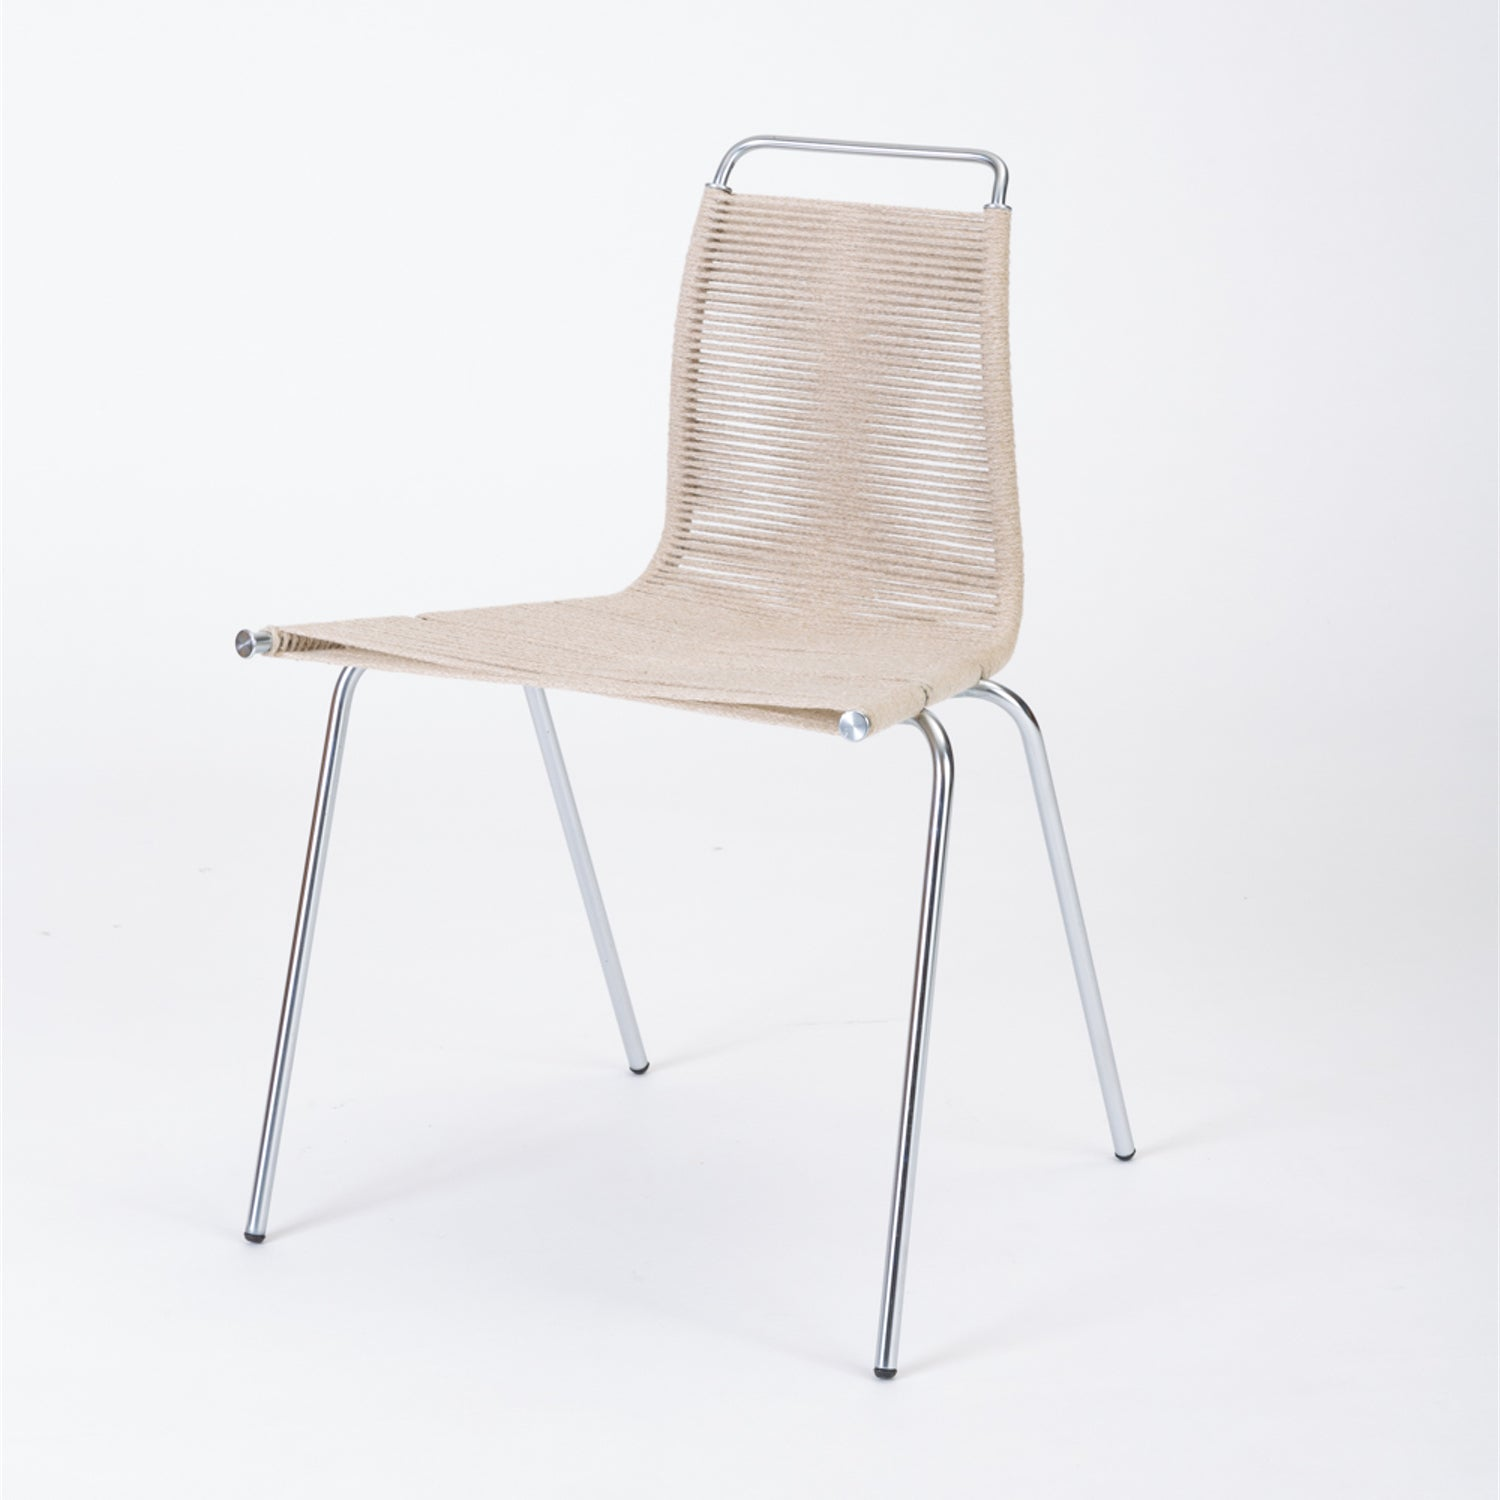 ON HOLD****Single PK-1 Dining or Accent Chair by Poul Kjaerholm for E Kold Christensen